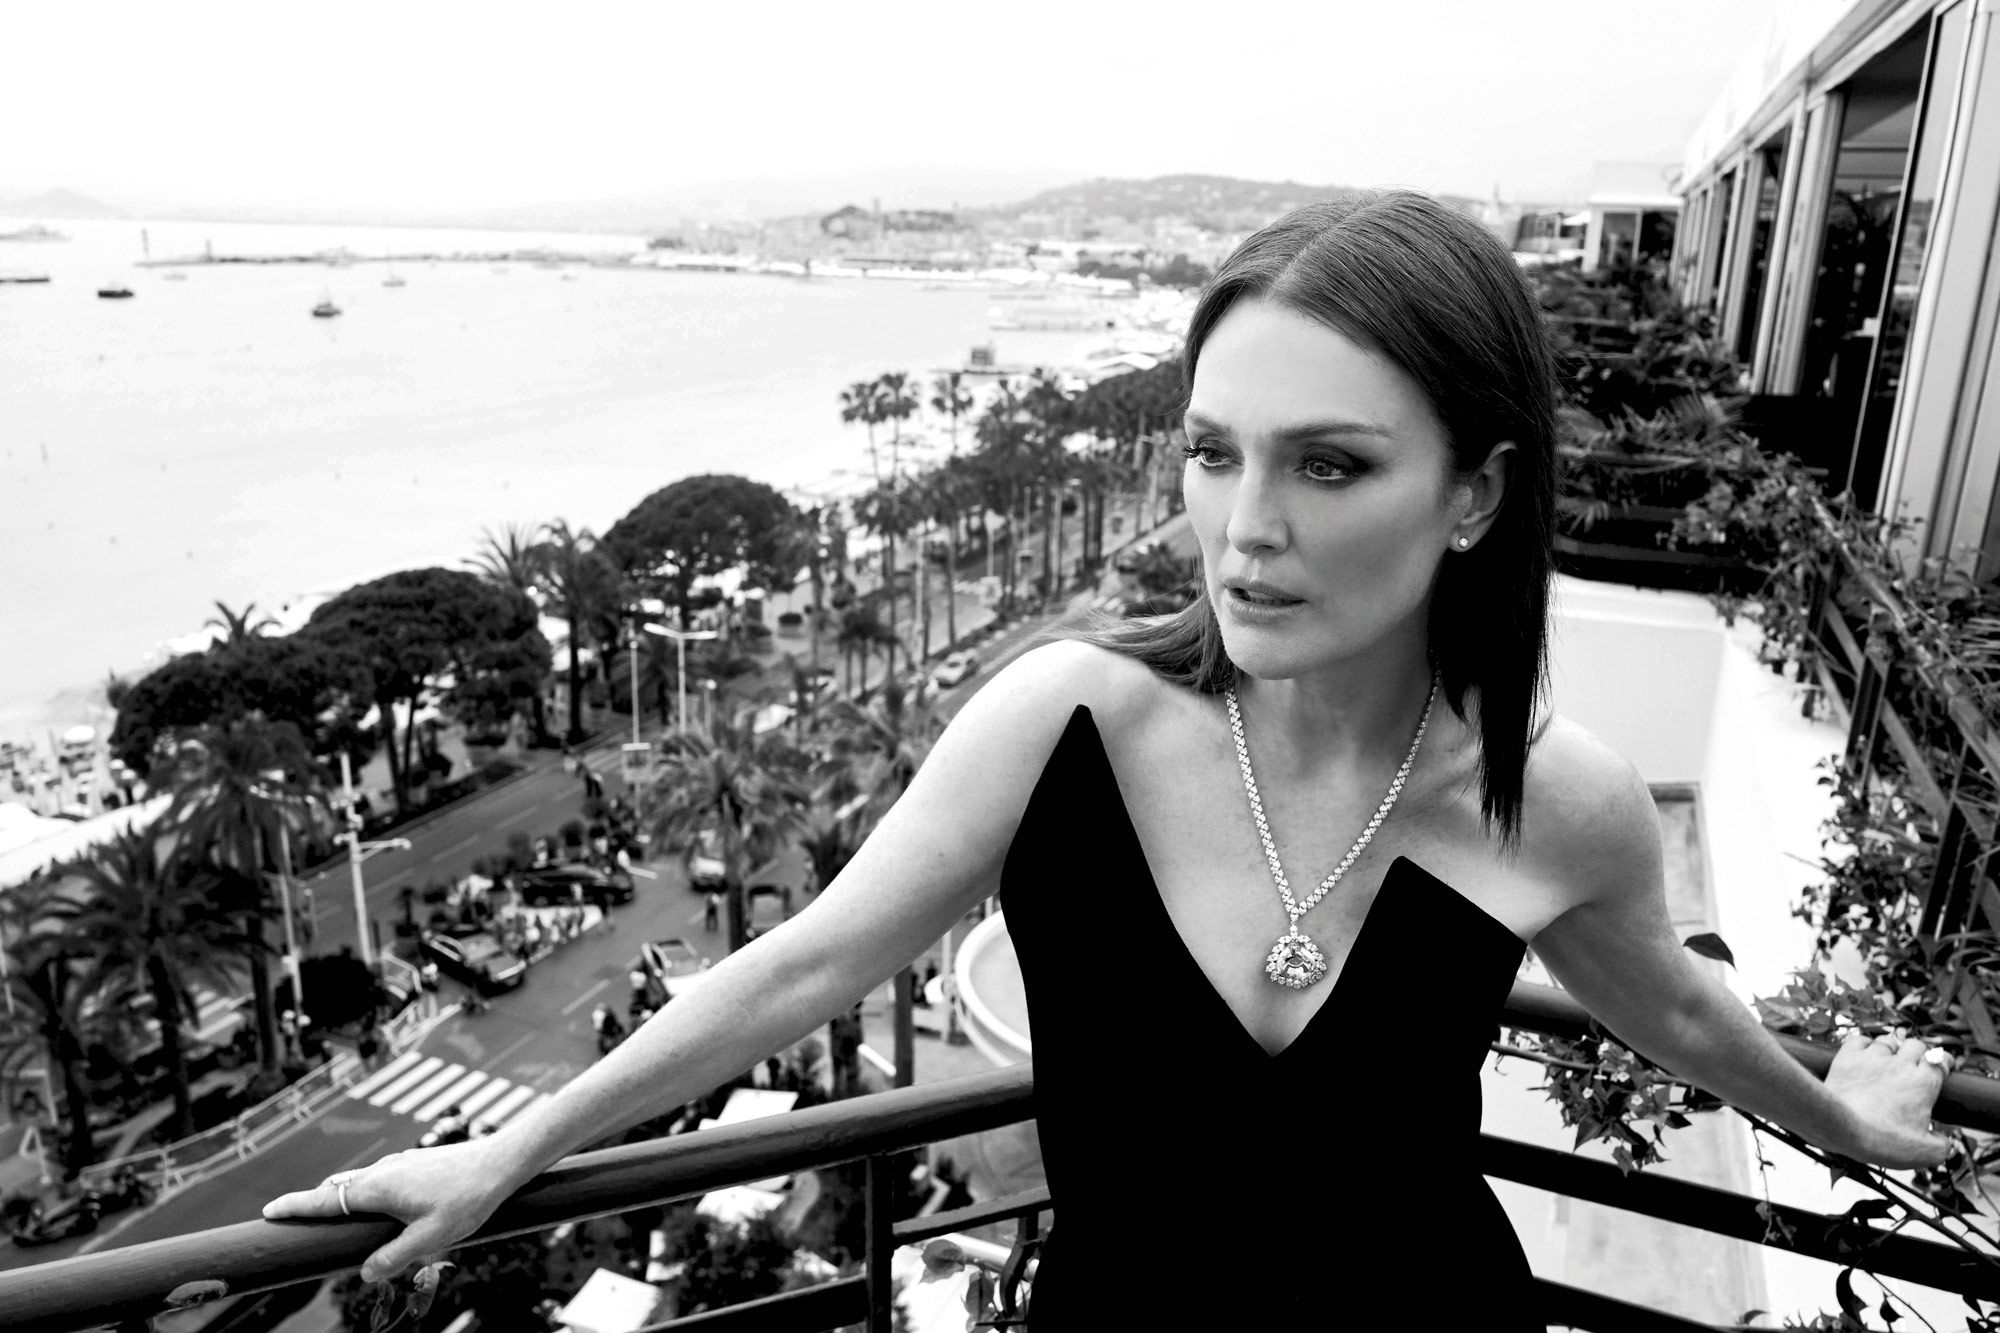 Moore Than Meets The Eye: Julianne Moore On Sustainability With Chopard